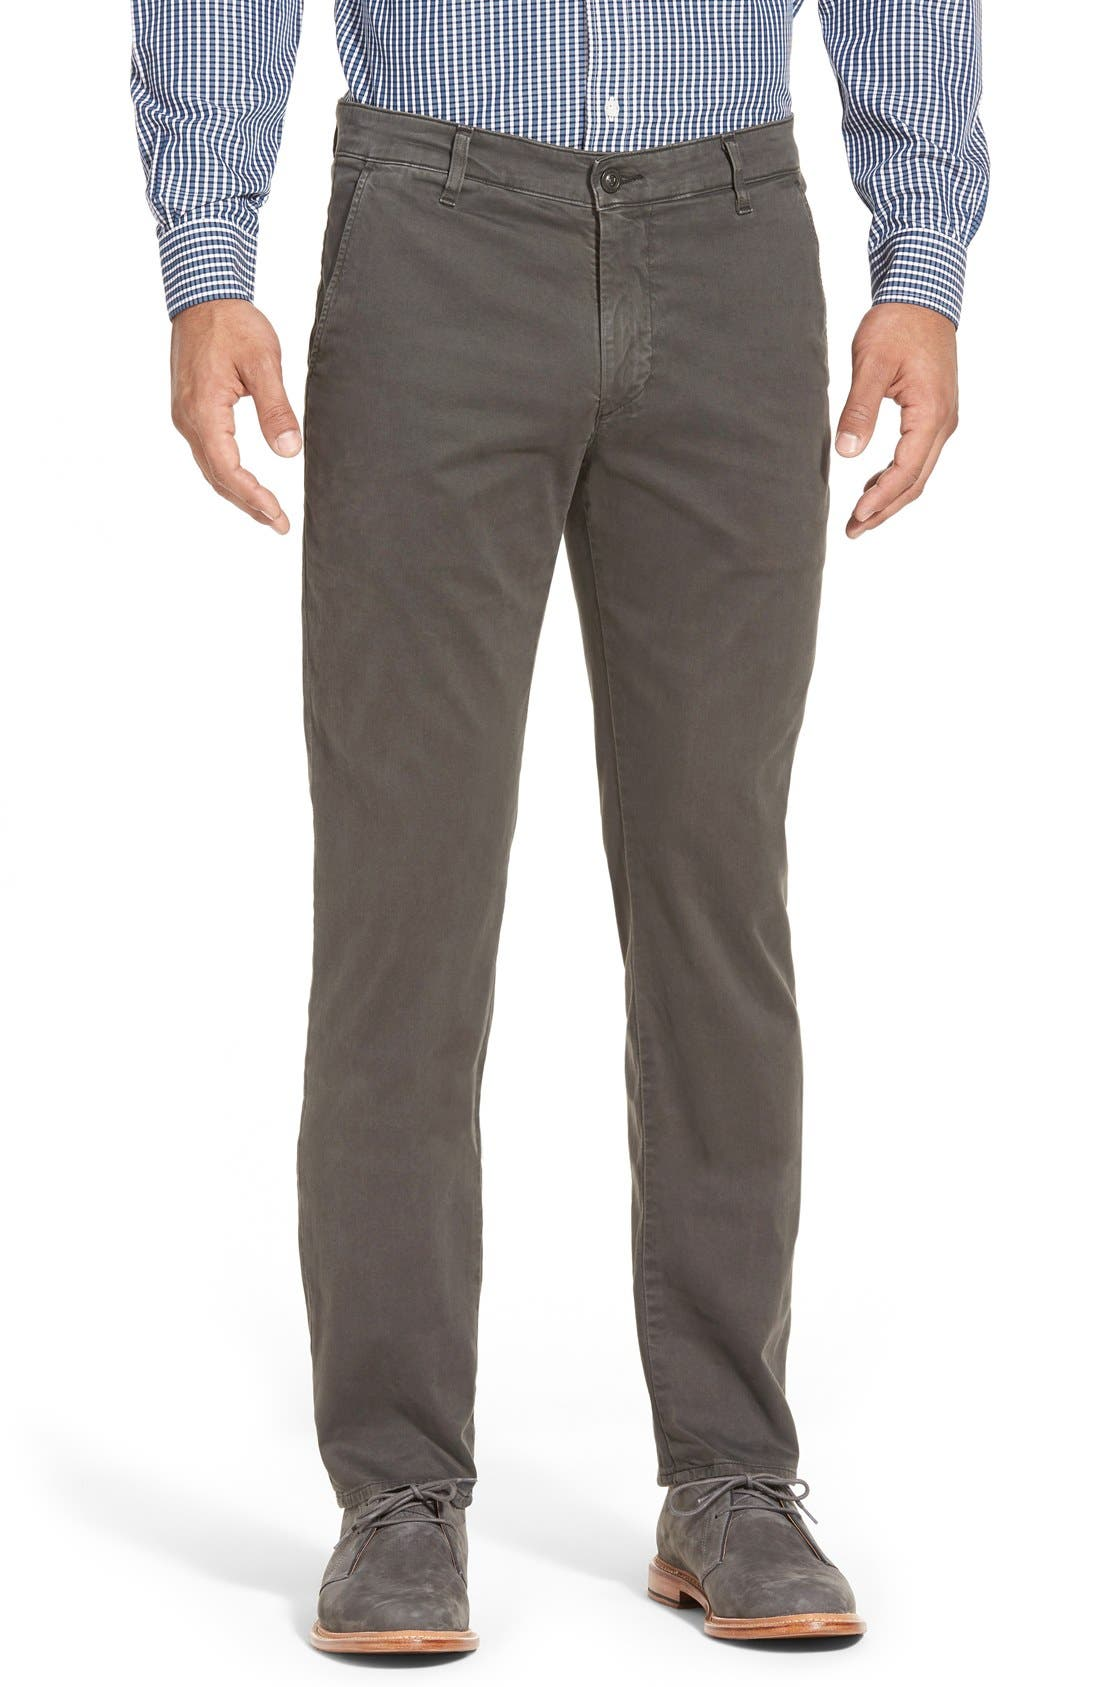 'The Lux' Tailored Straight Leg Chinos,                             Main thumbnail 7, color,